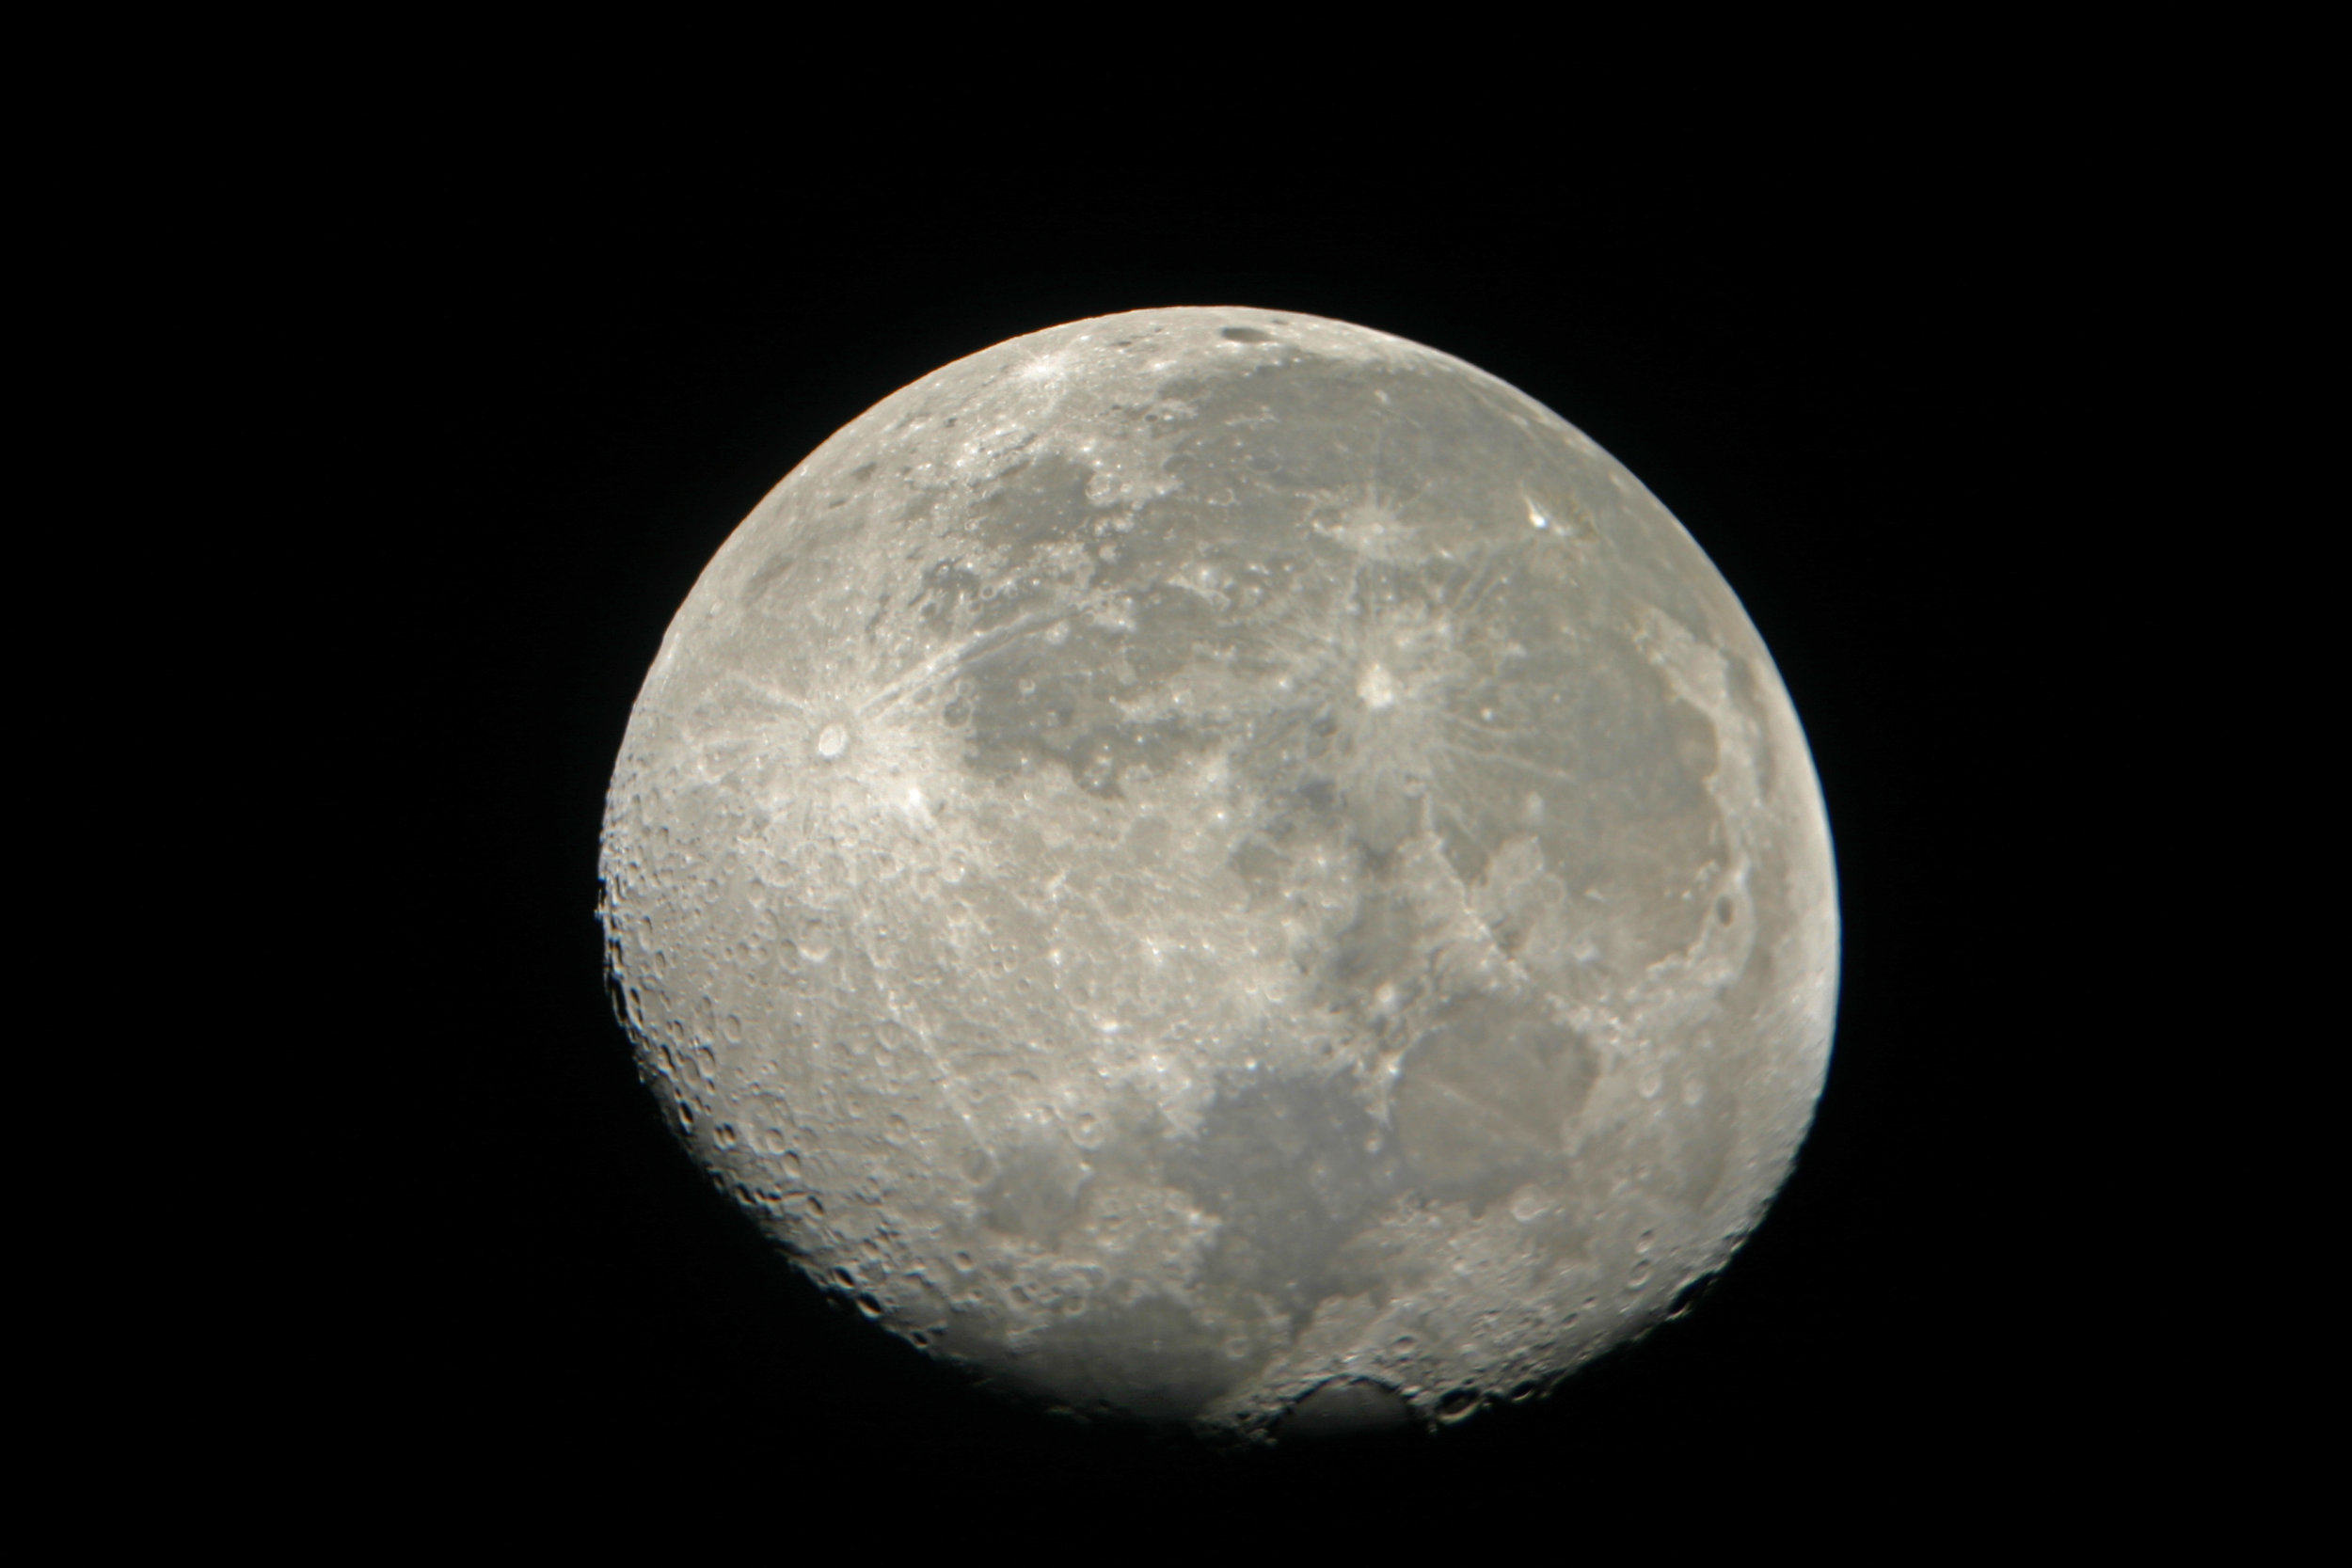 Waxing gibbous moon seen from 9300 feet on Mauna Kea, Hawaii 2006